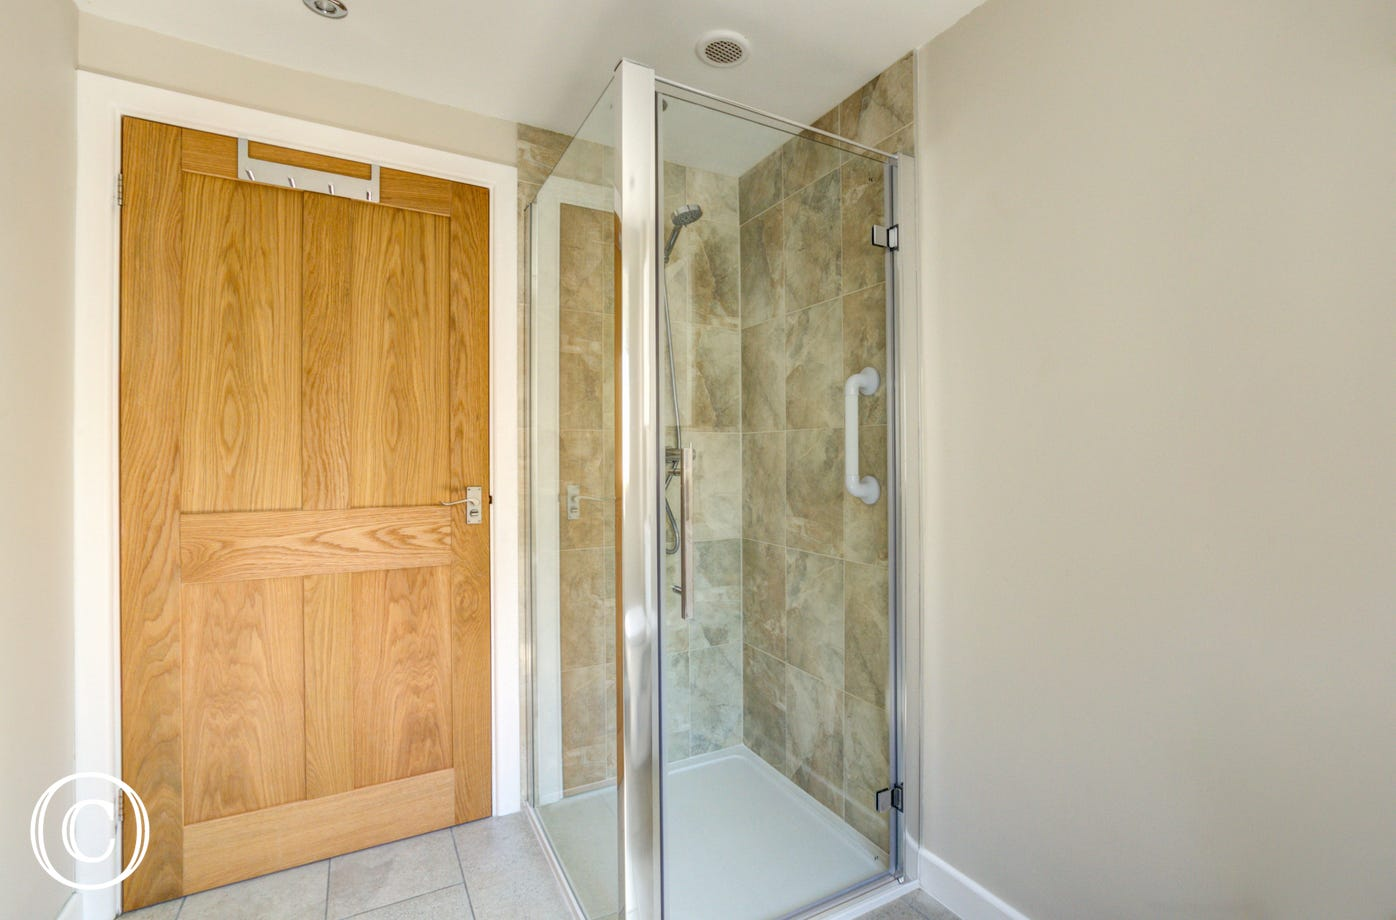 Bathroom showing shower cubicle